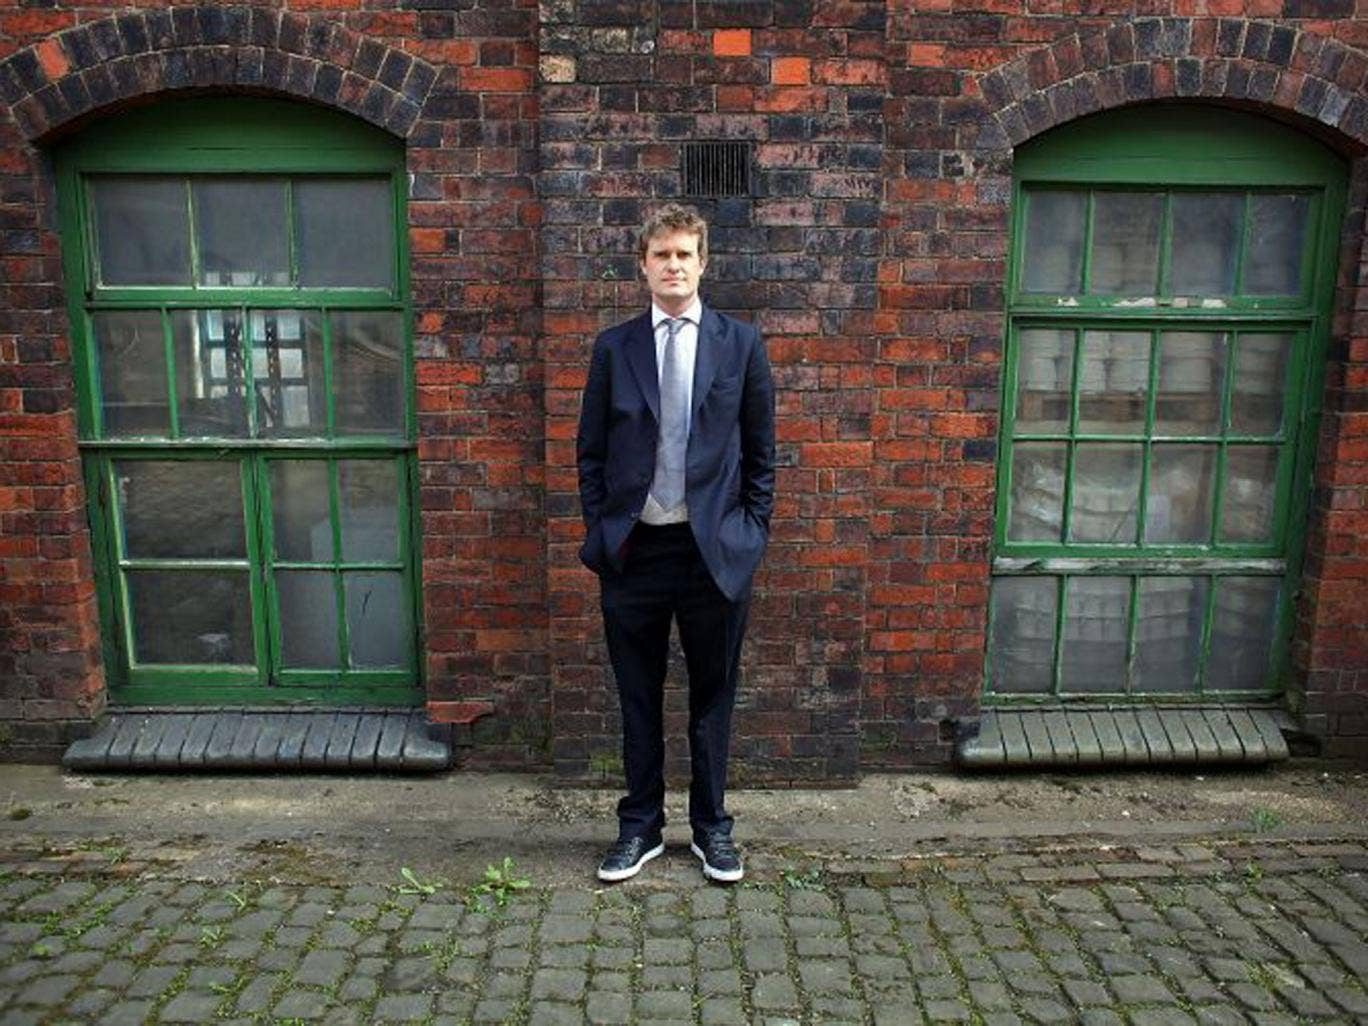 Past life: Tristram Hunt, the shadow Education Secretary, and author of 'Ten Cities that Made an Empire'